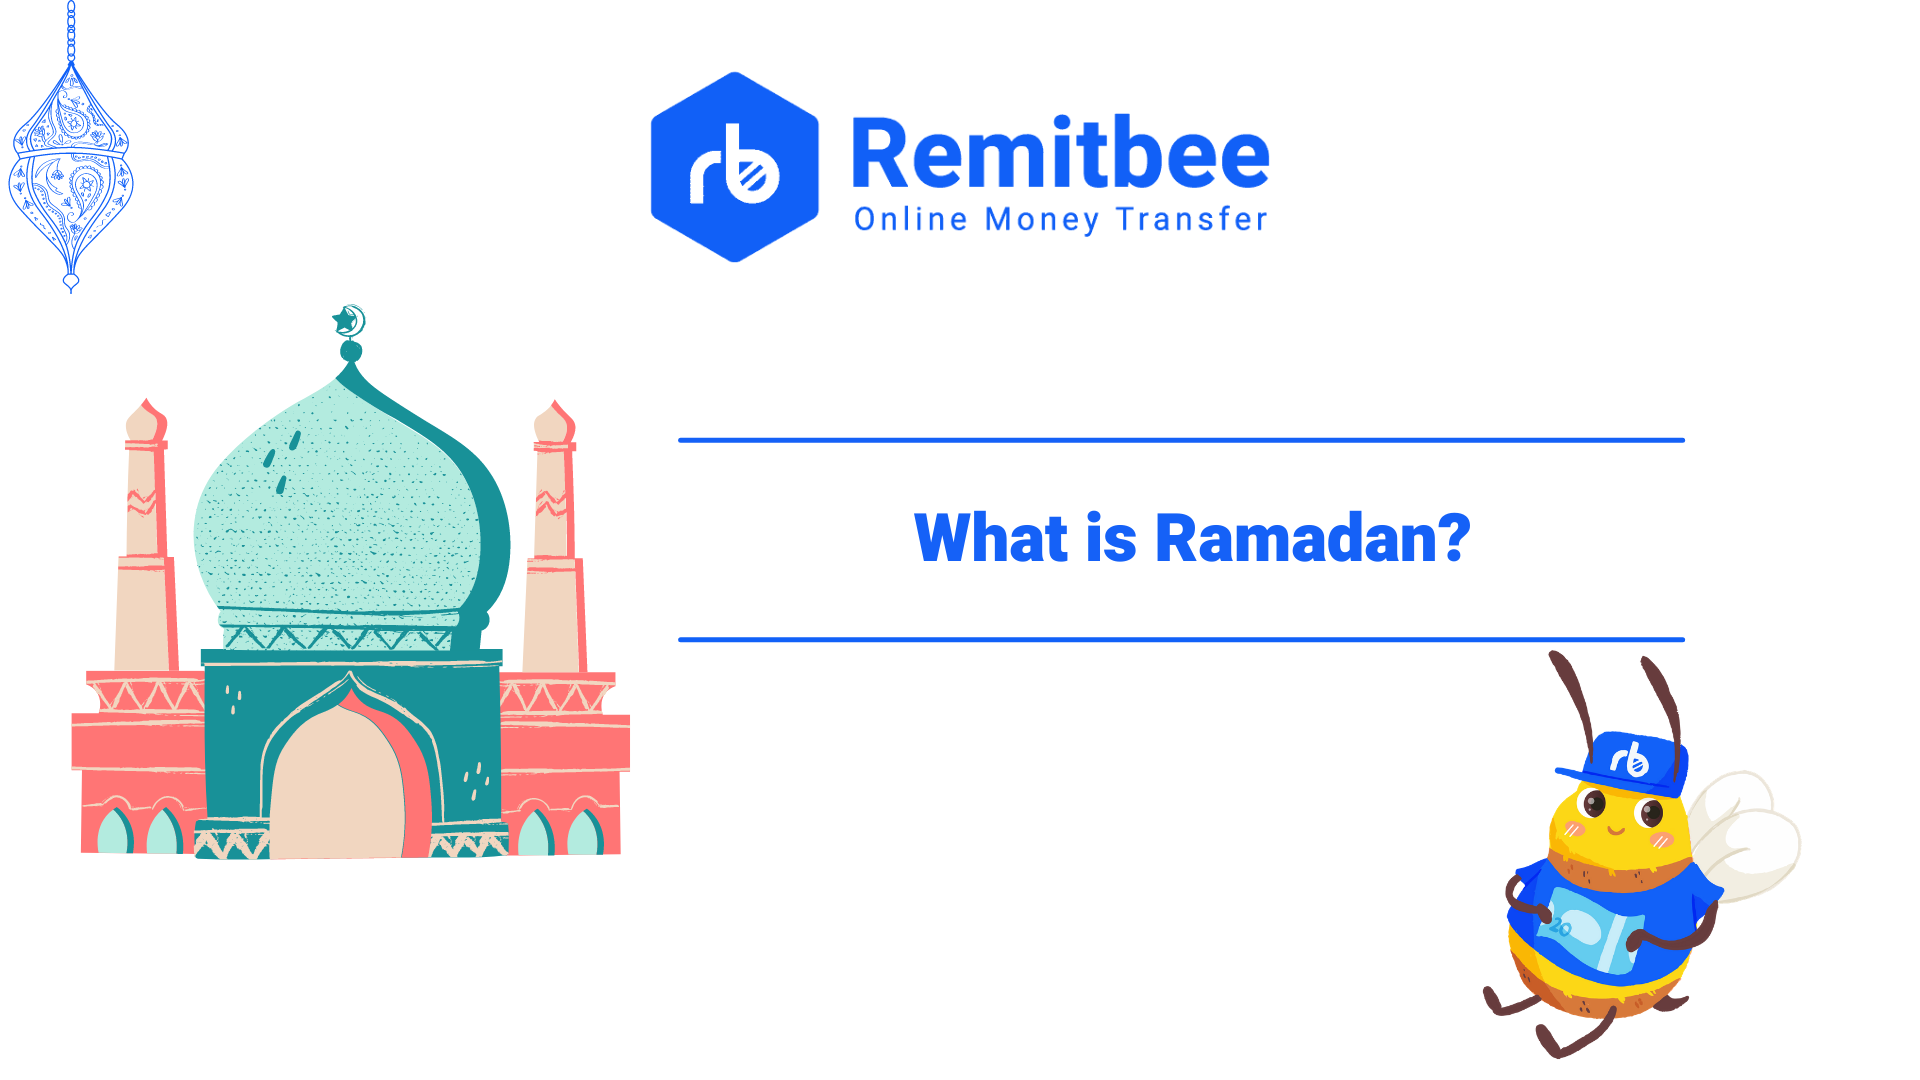 What is Ramadan and why is it celebrating?